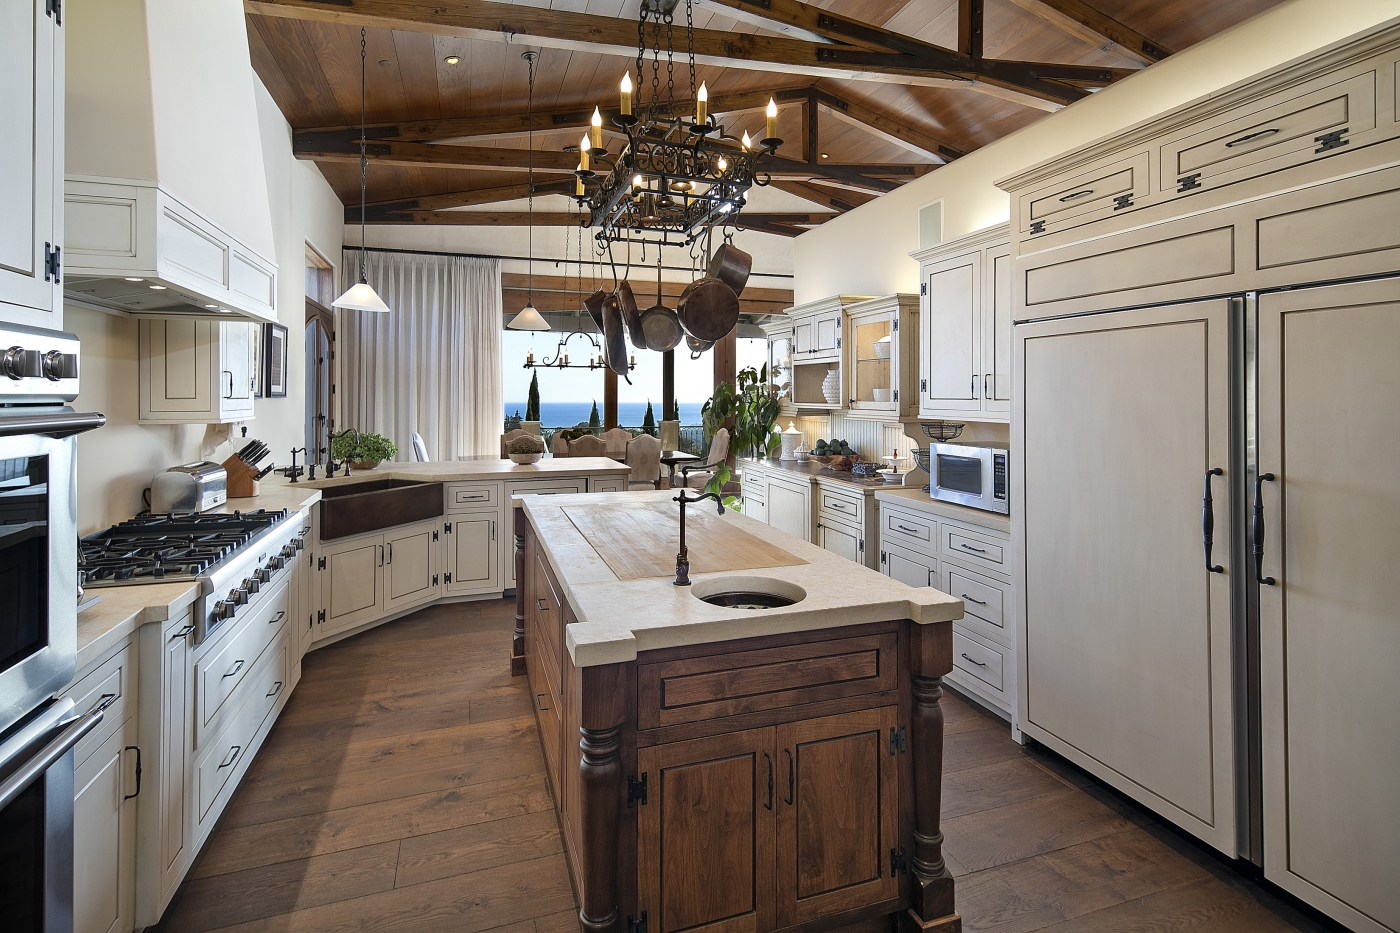 Open & Bright Kitchen with Ocean Views